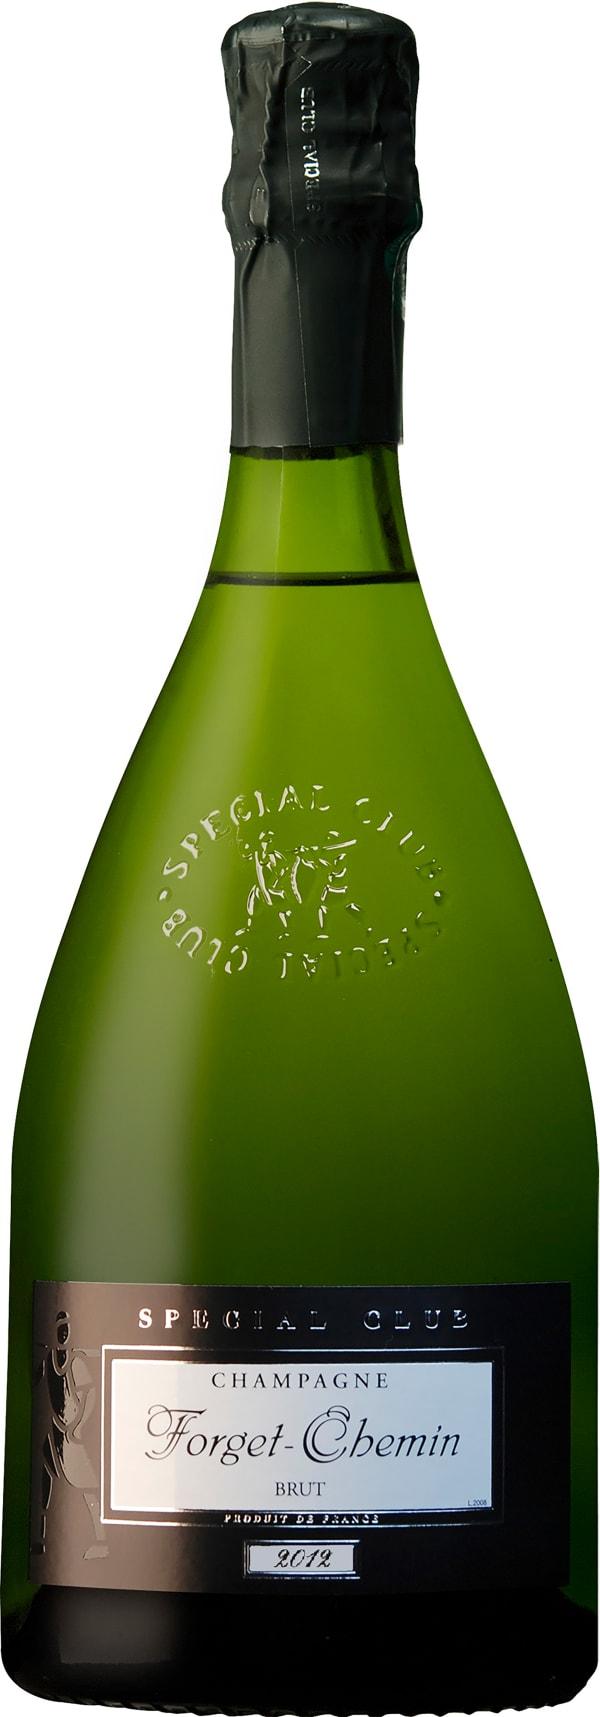 Forget-Chemin Special Club Champagne Brut 2013